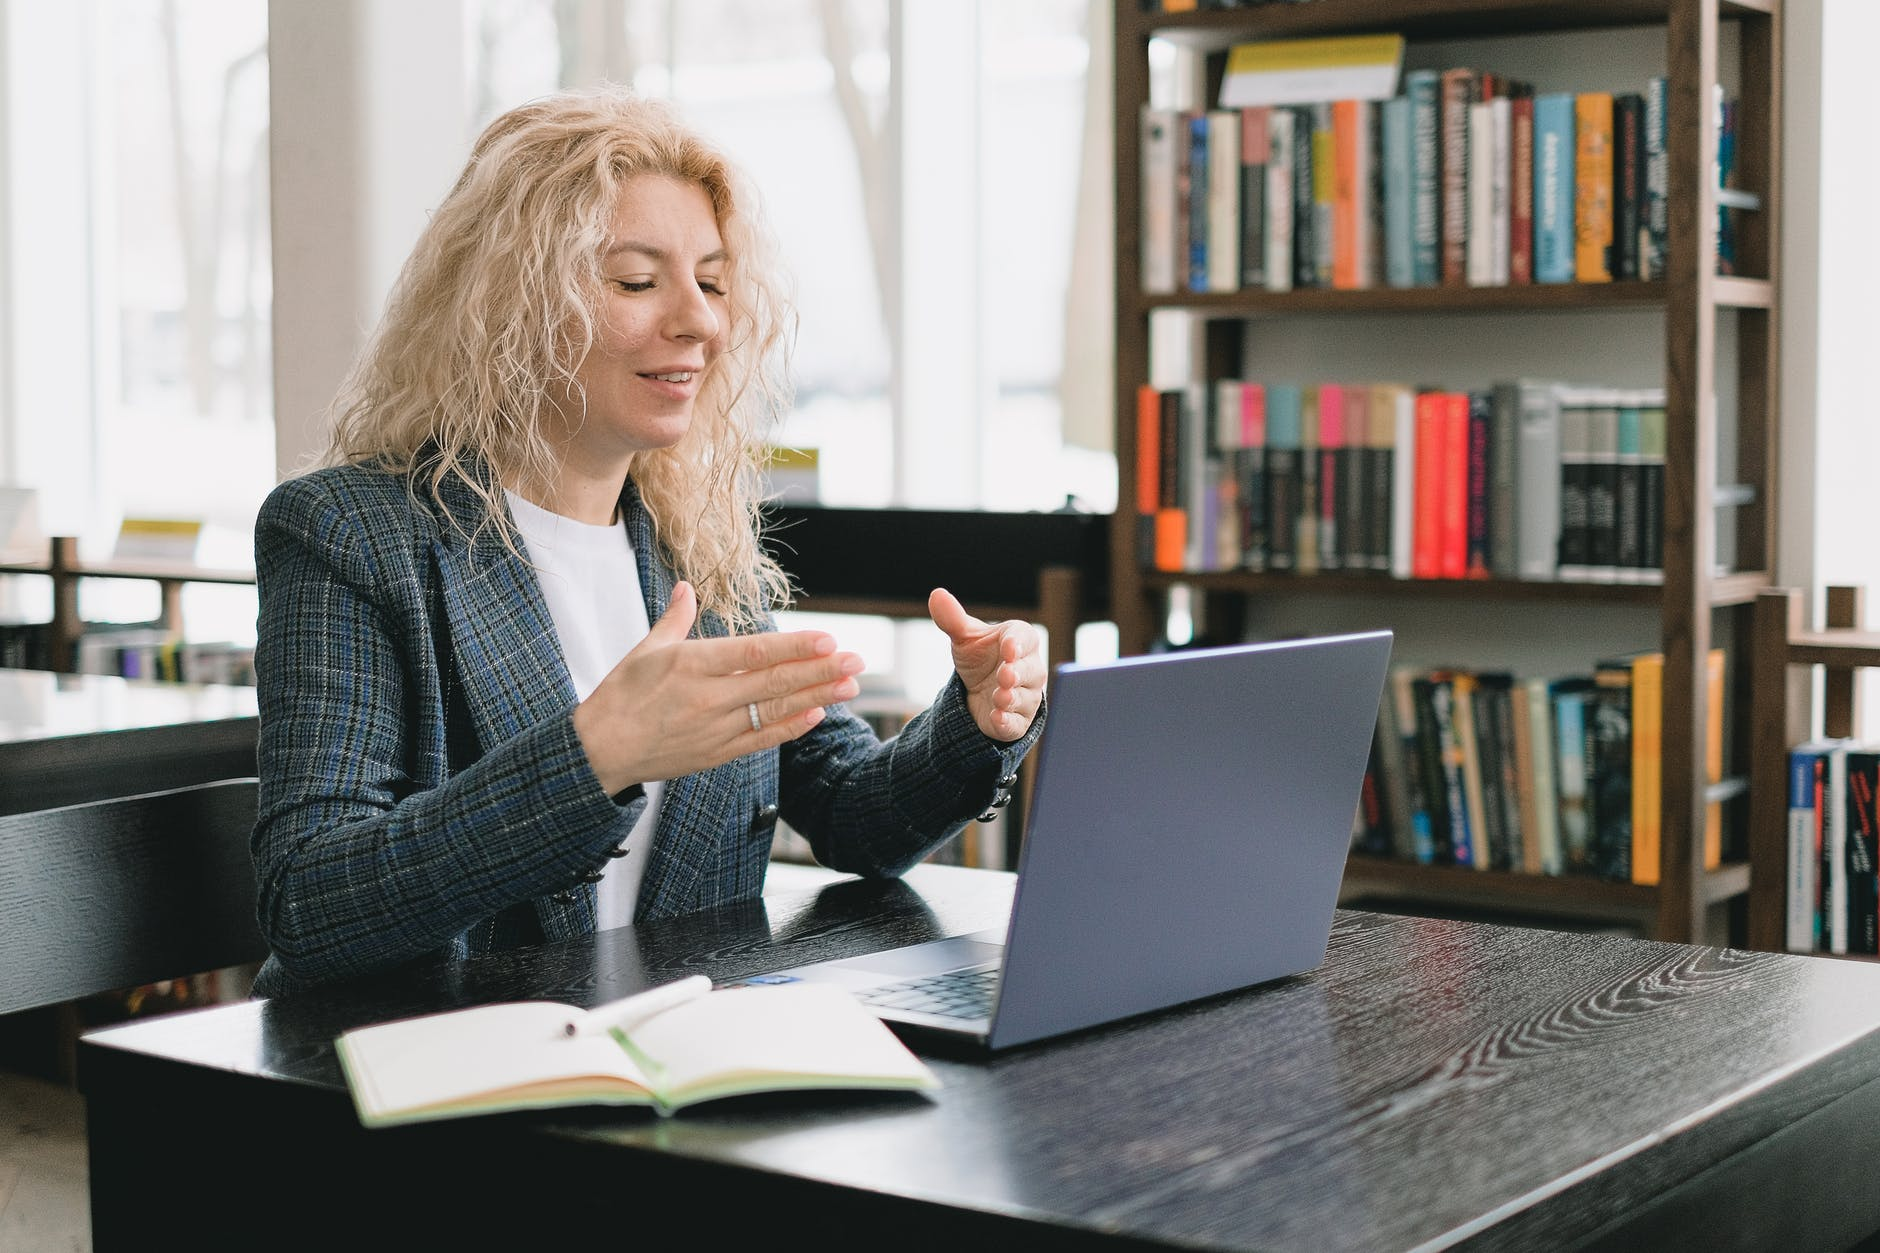 smiling woman having video chat via laptop in library